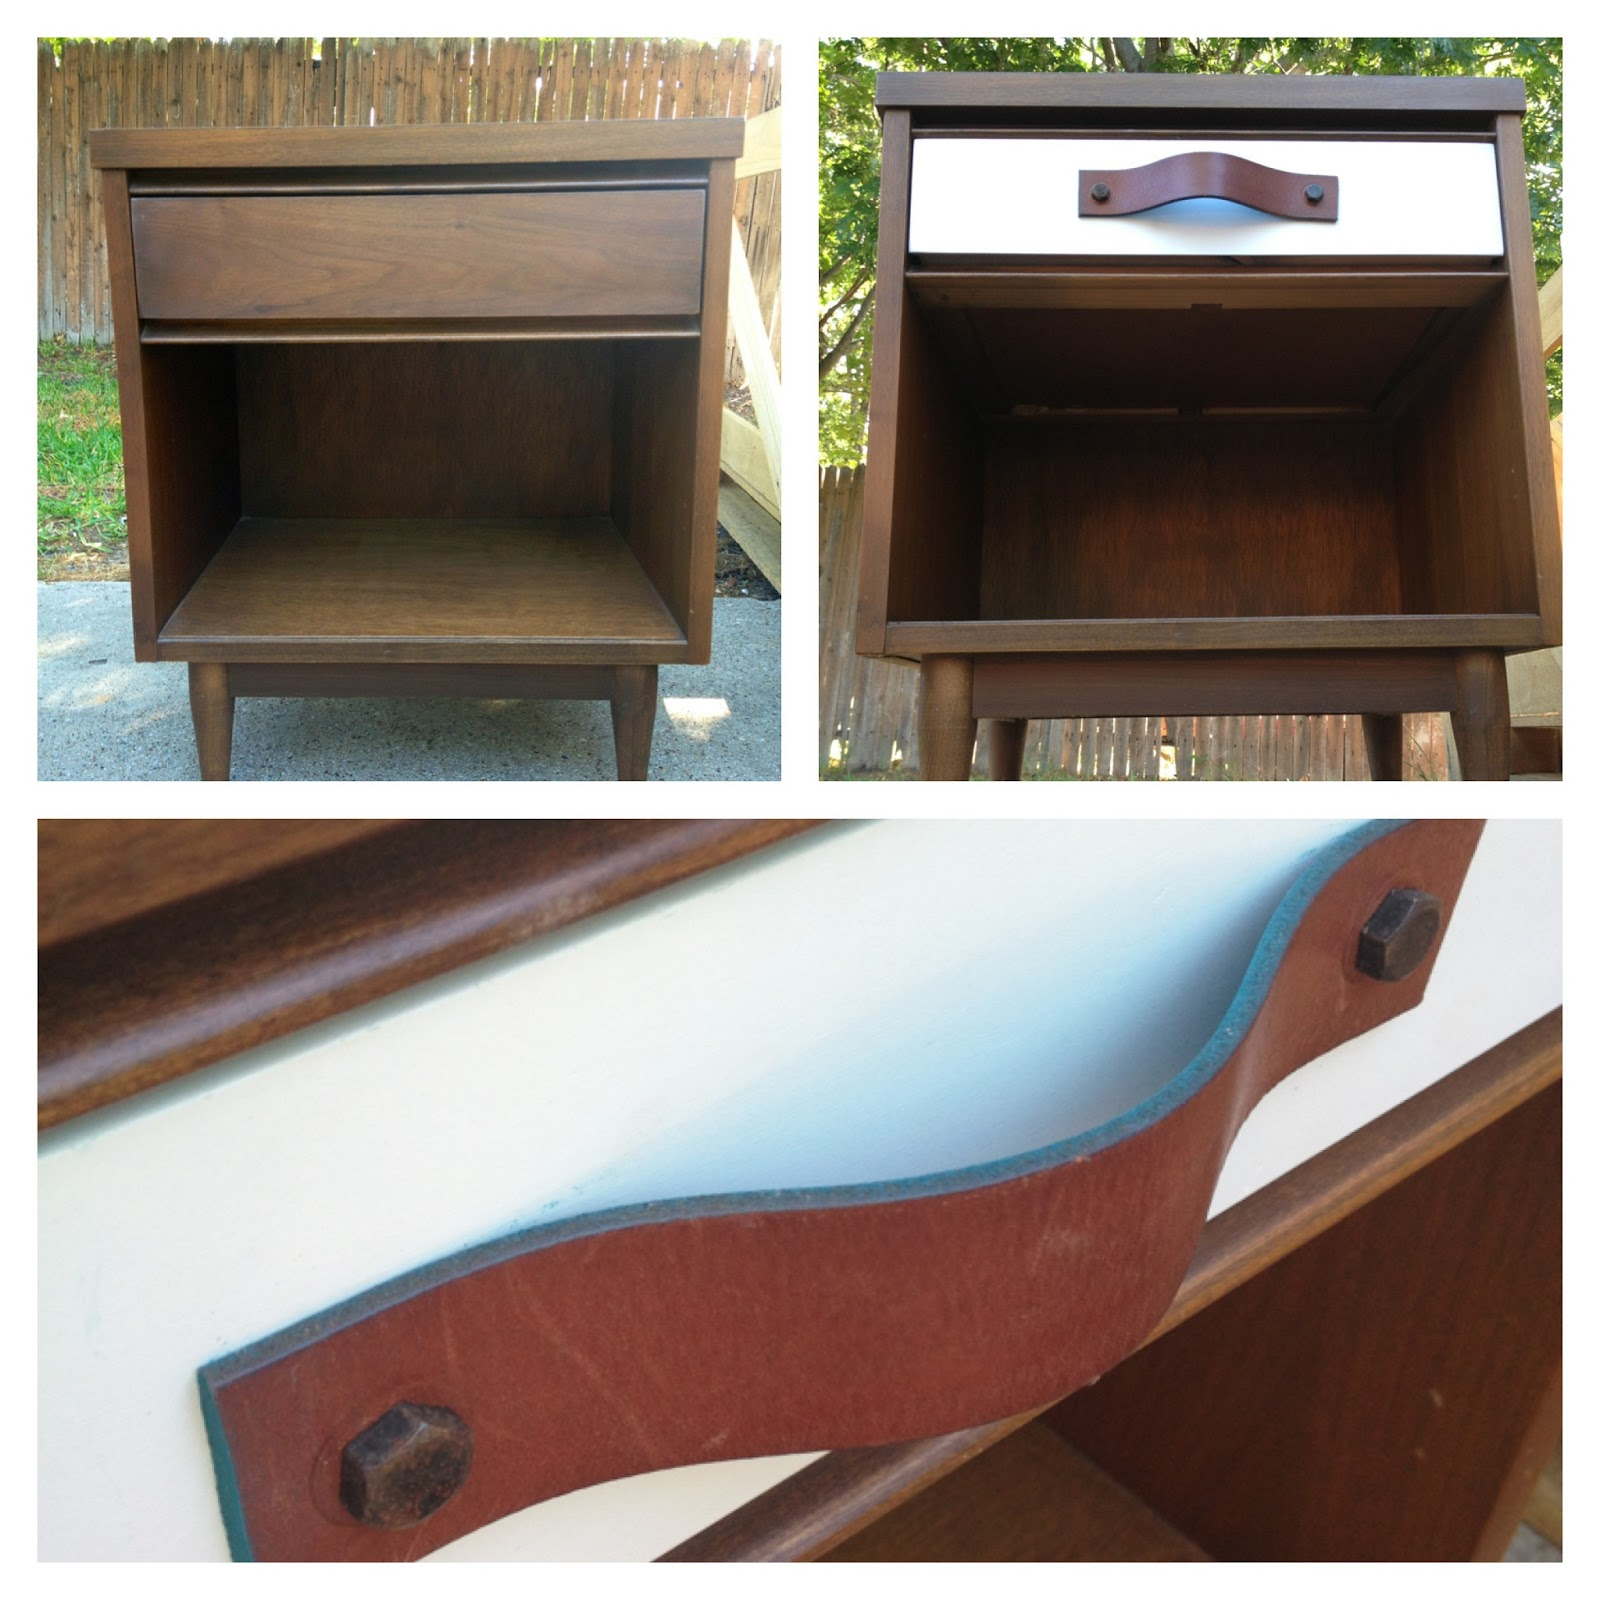 can i spray paint my leather sofa sofas on credit with no checks the happy homebodies diy nightstand facelift